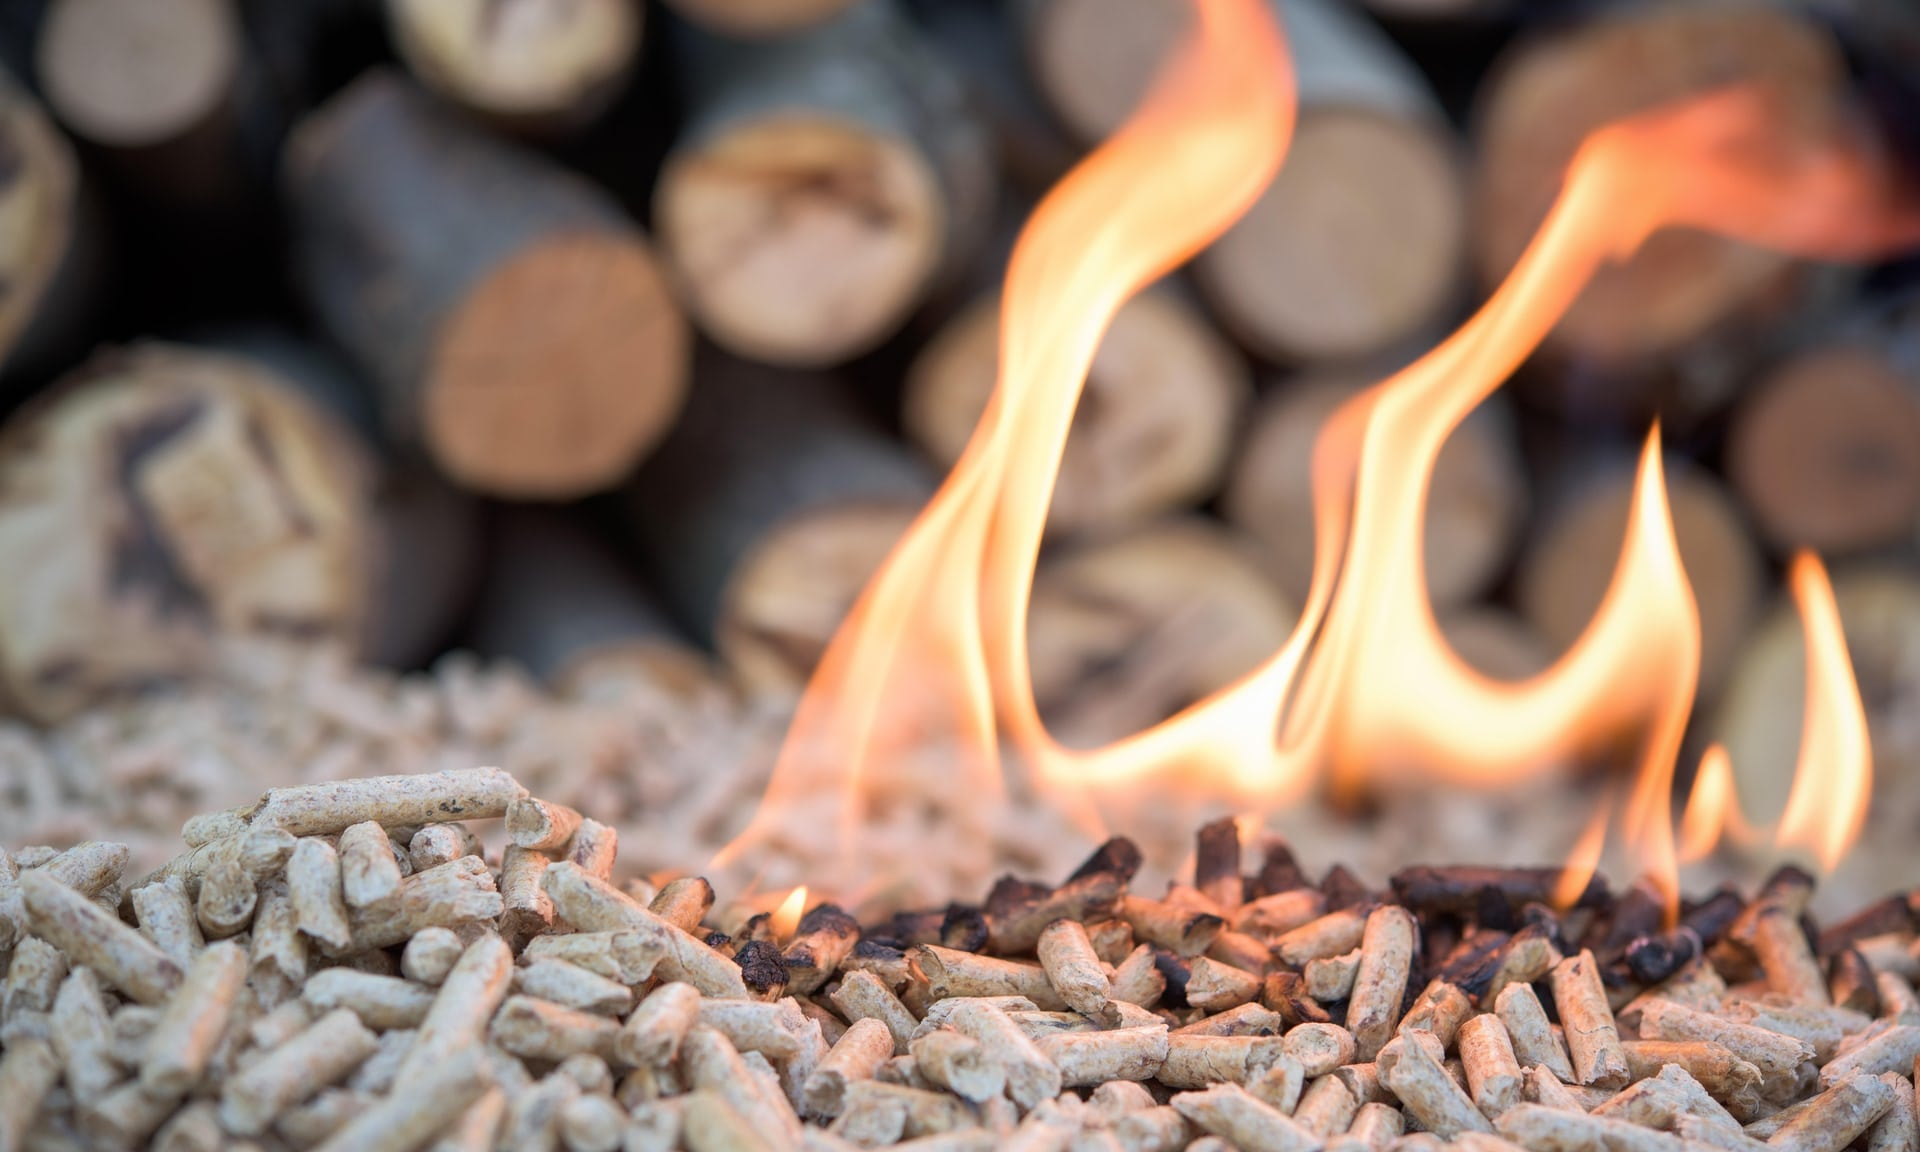 The dirty little secret behind 'clean energy' wood pellets